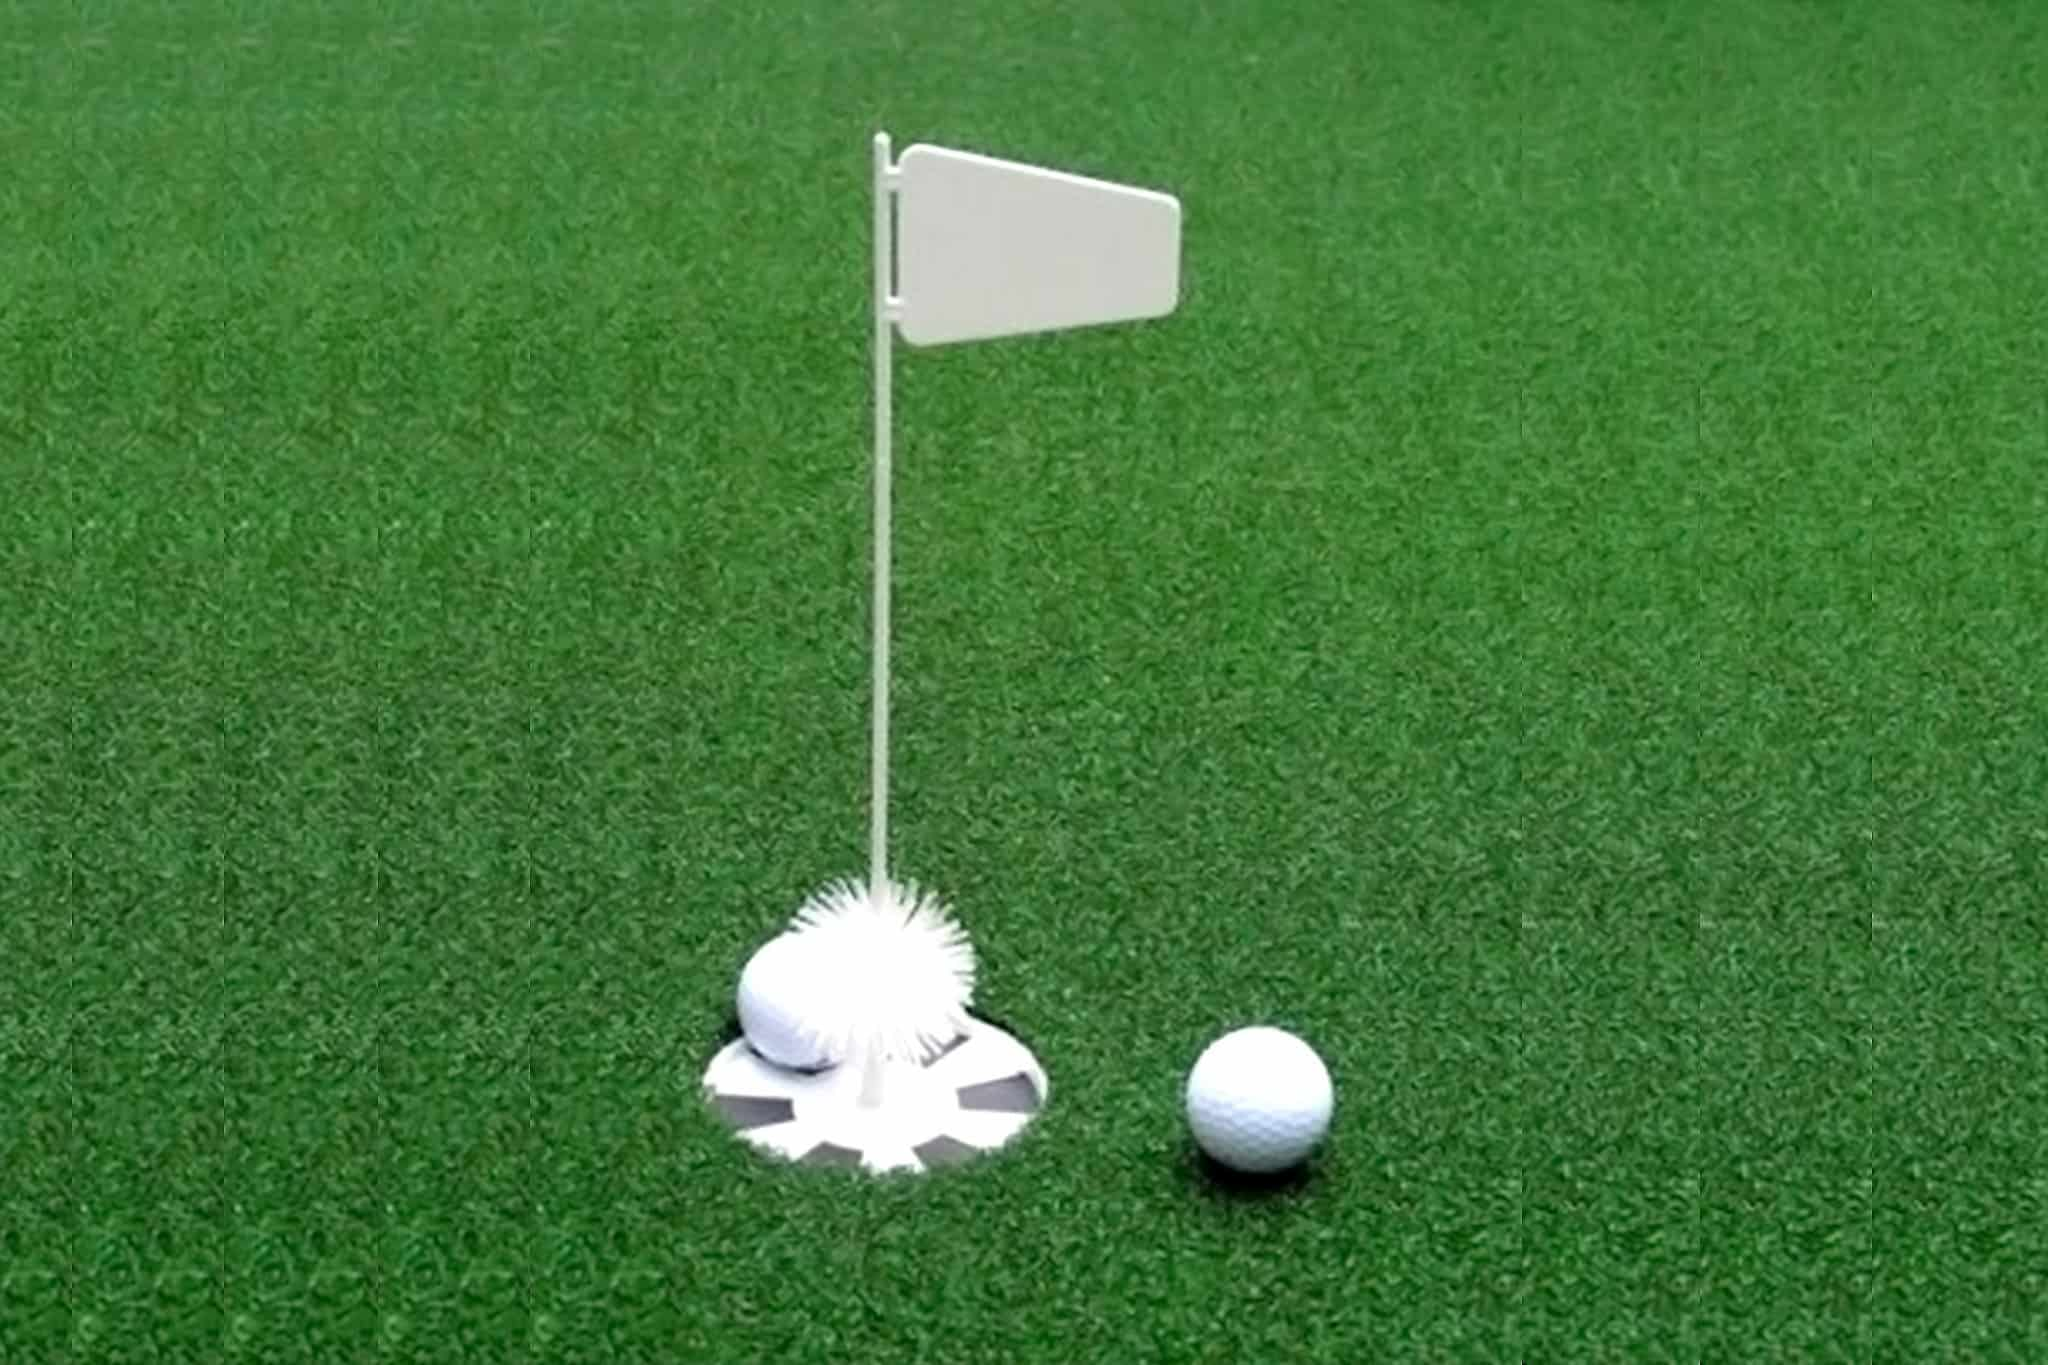 Guide to Buying the Right Chipping Net for Golf